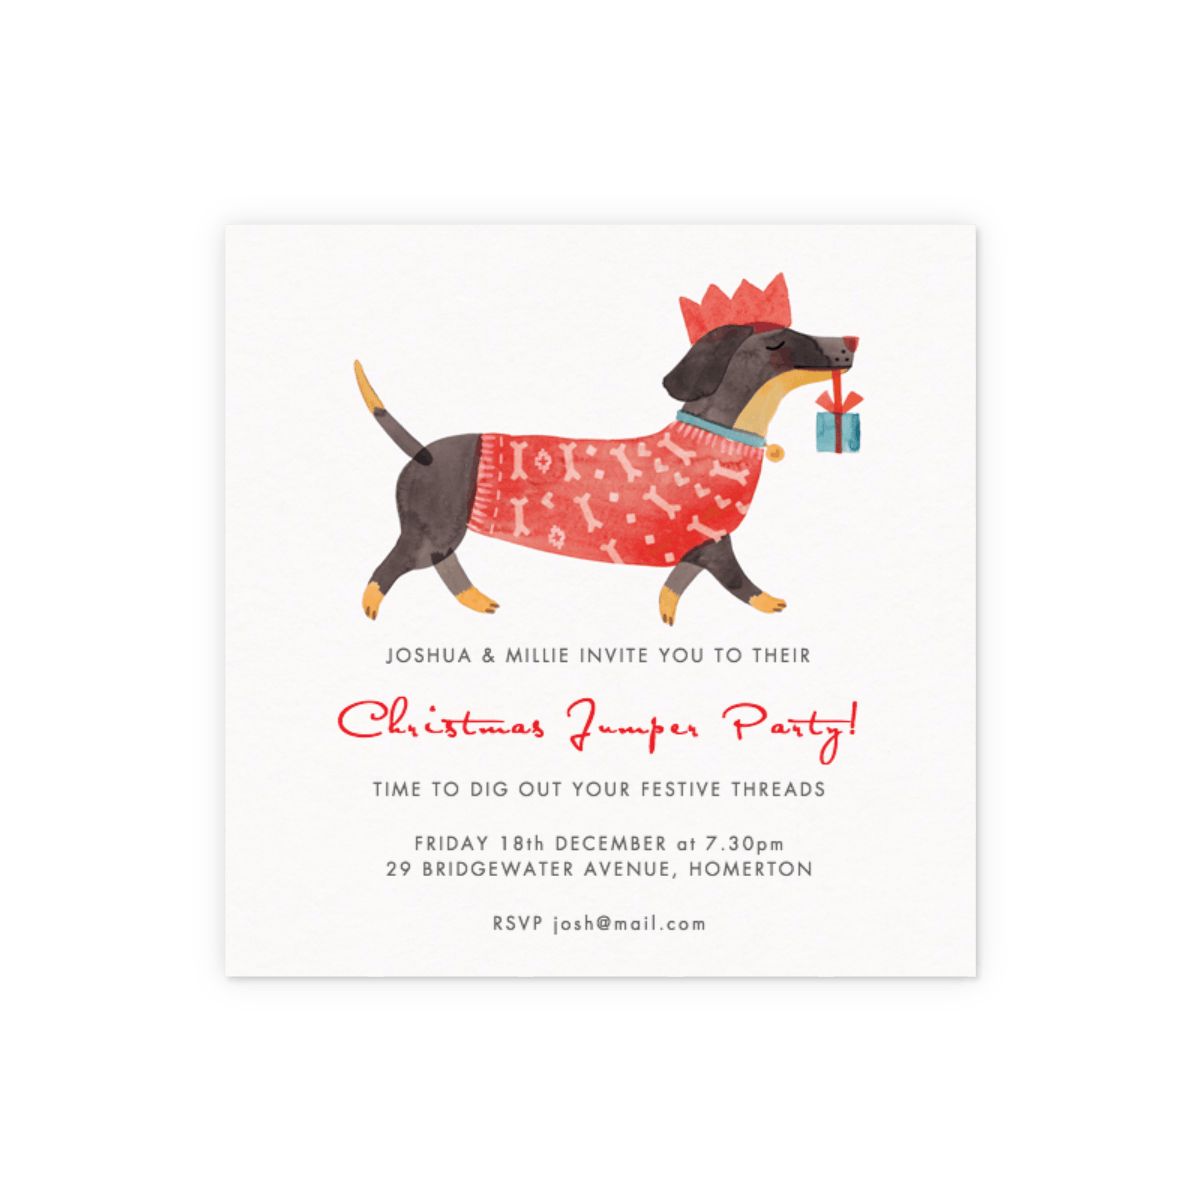 Https%3a%2f%2fwww.papier.com%2fproduct image%2f28877%2f11%2fchristmas dachshund 7249 front 1507546653.png?ixlib=rb 1.1